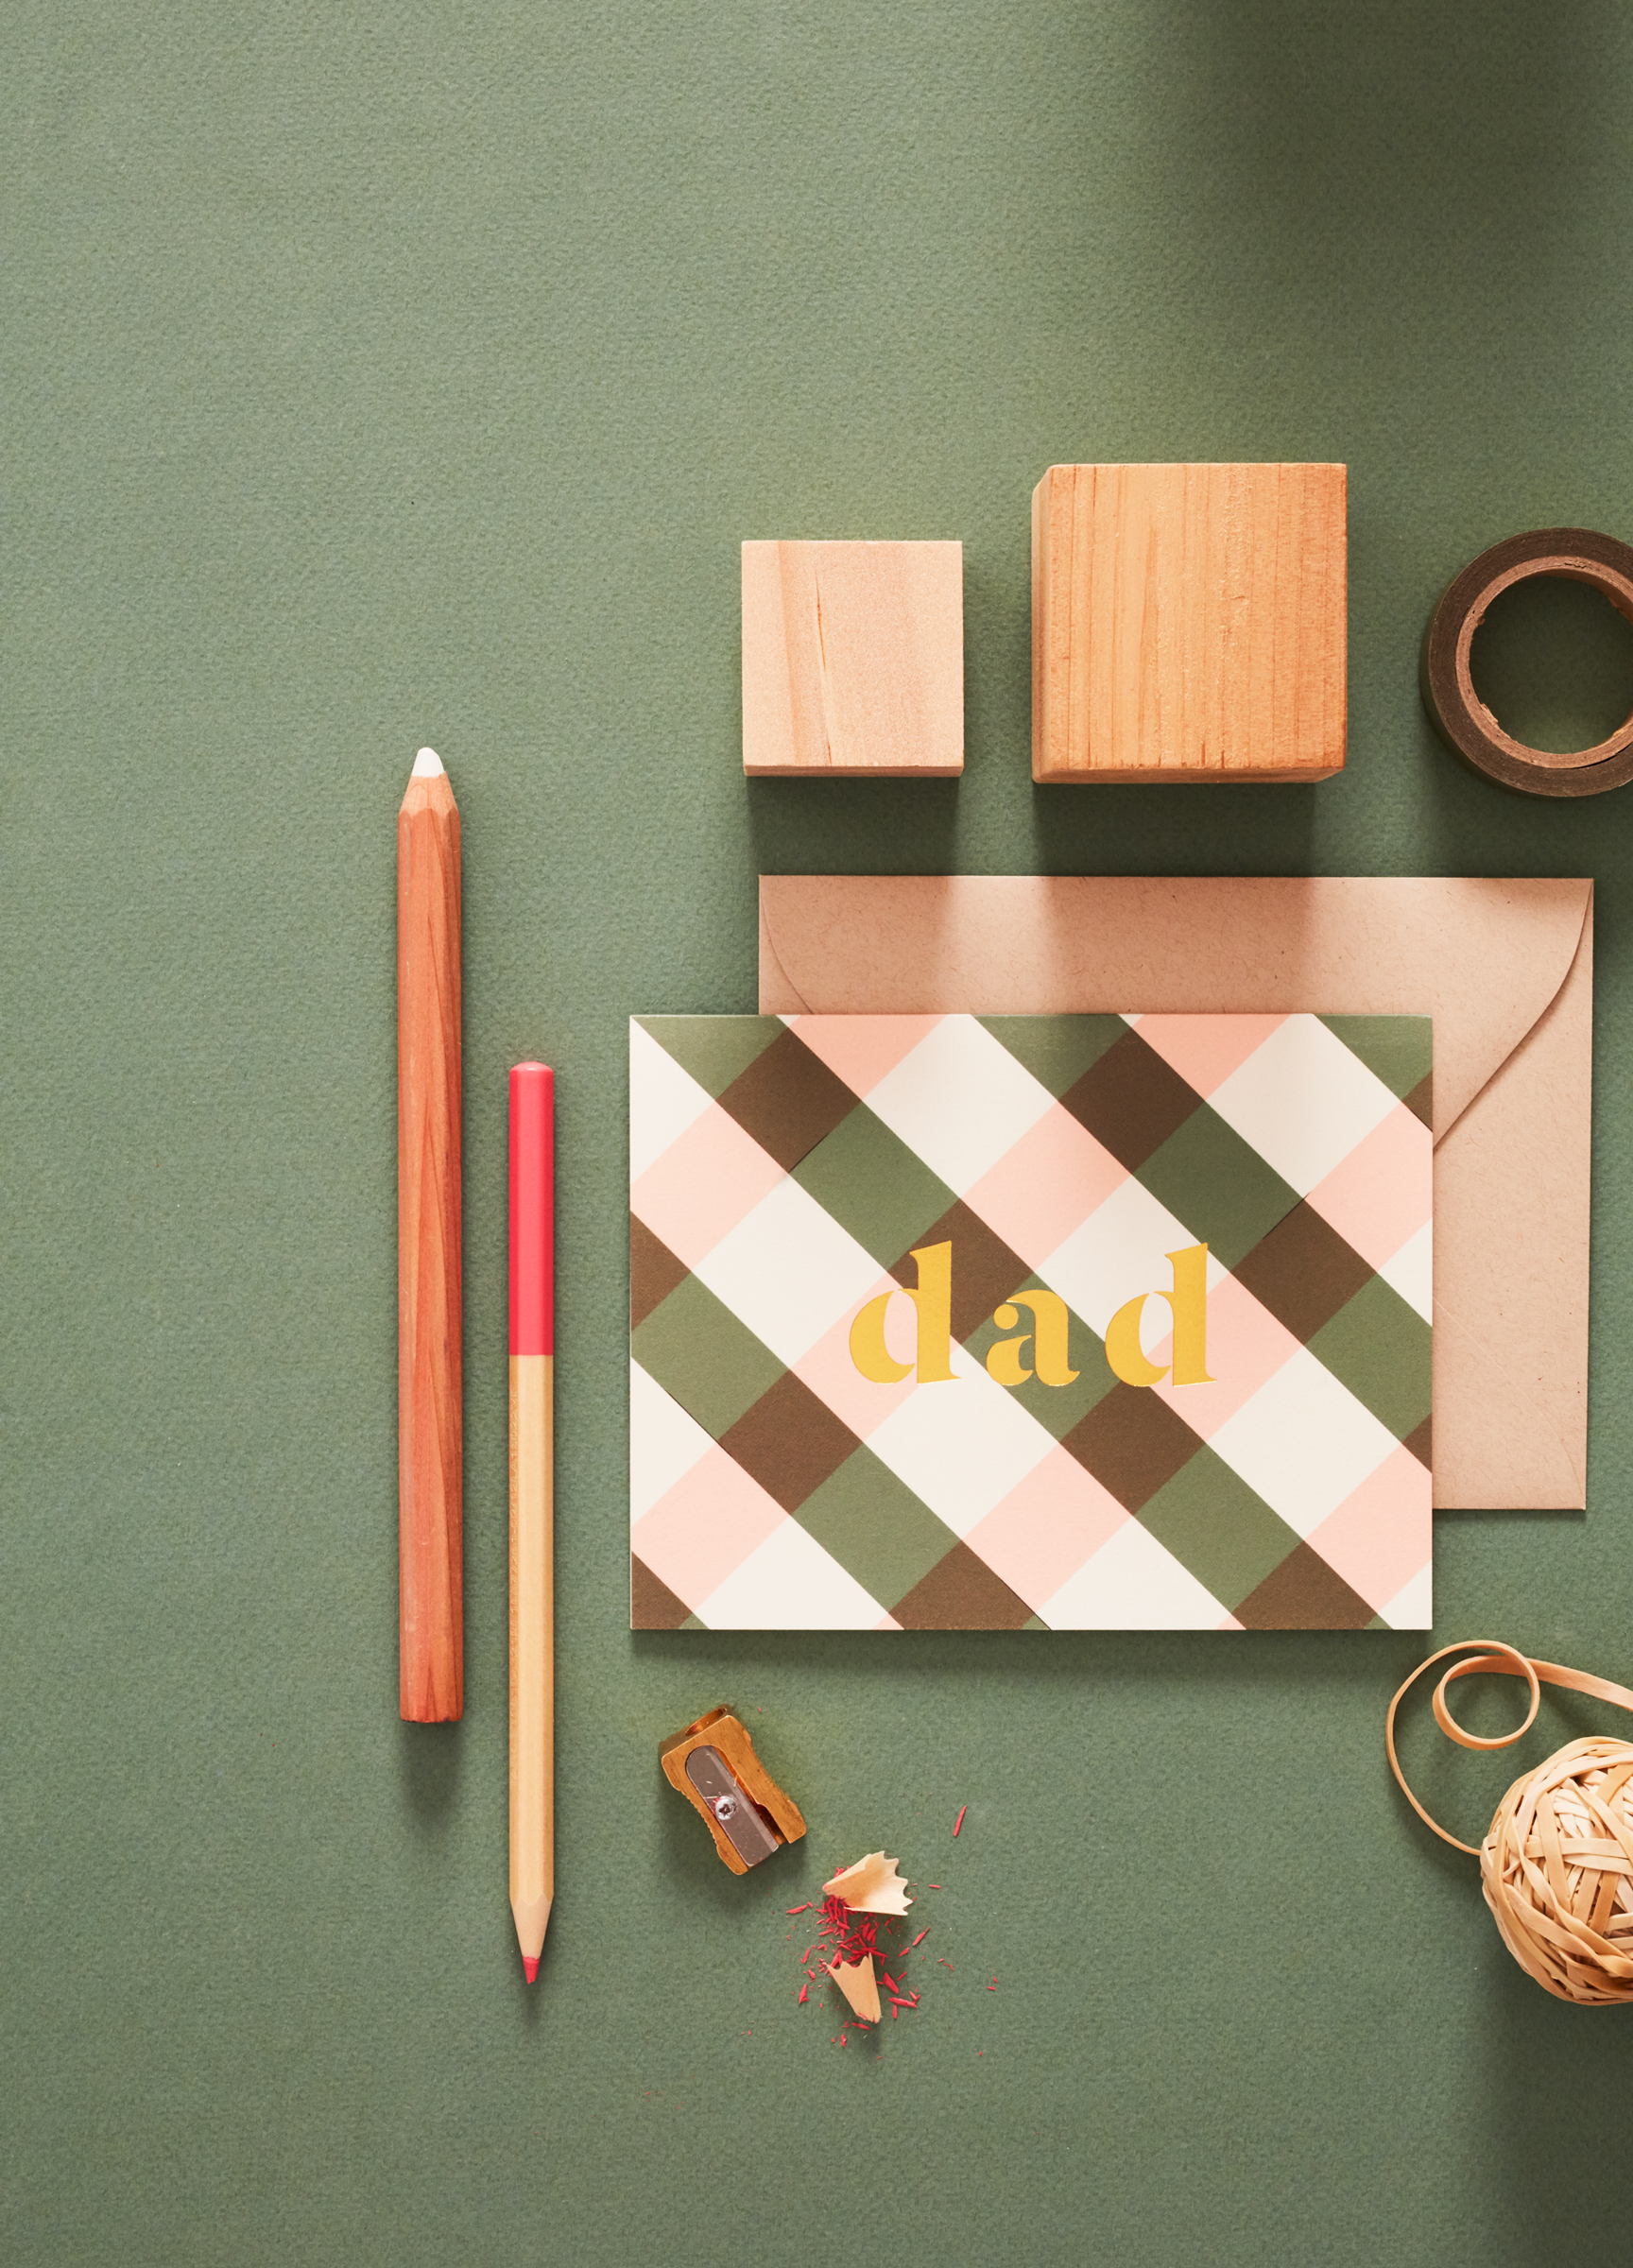 Amy_Heitman_Stationery13048_R.jpg